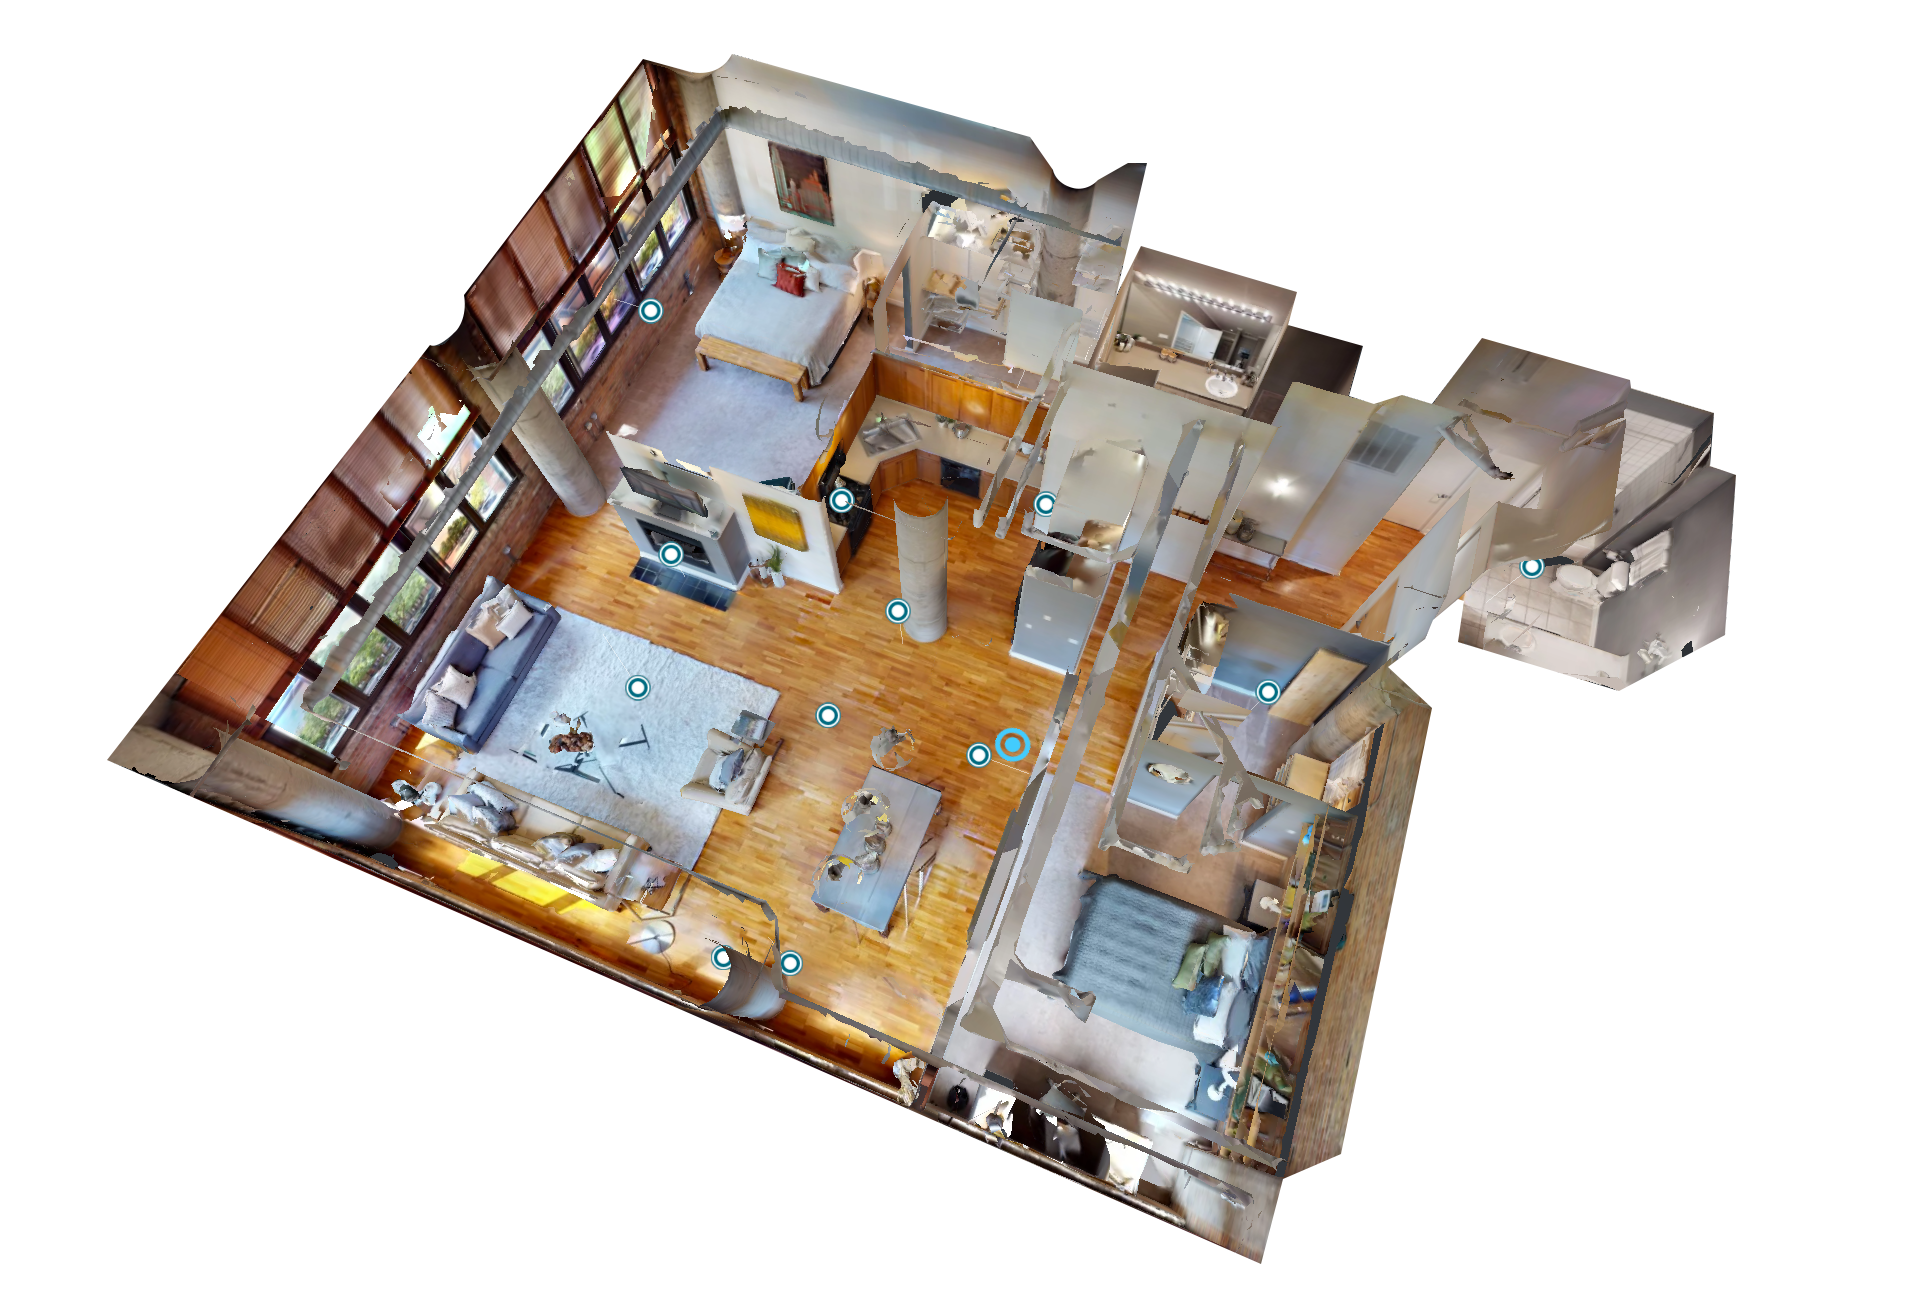 Dollhouse example with Matterport's 3D camera for real estate photography